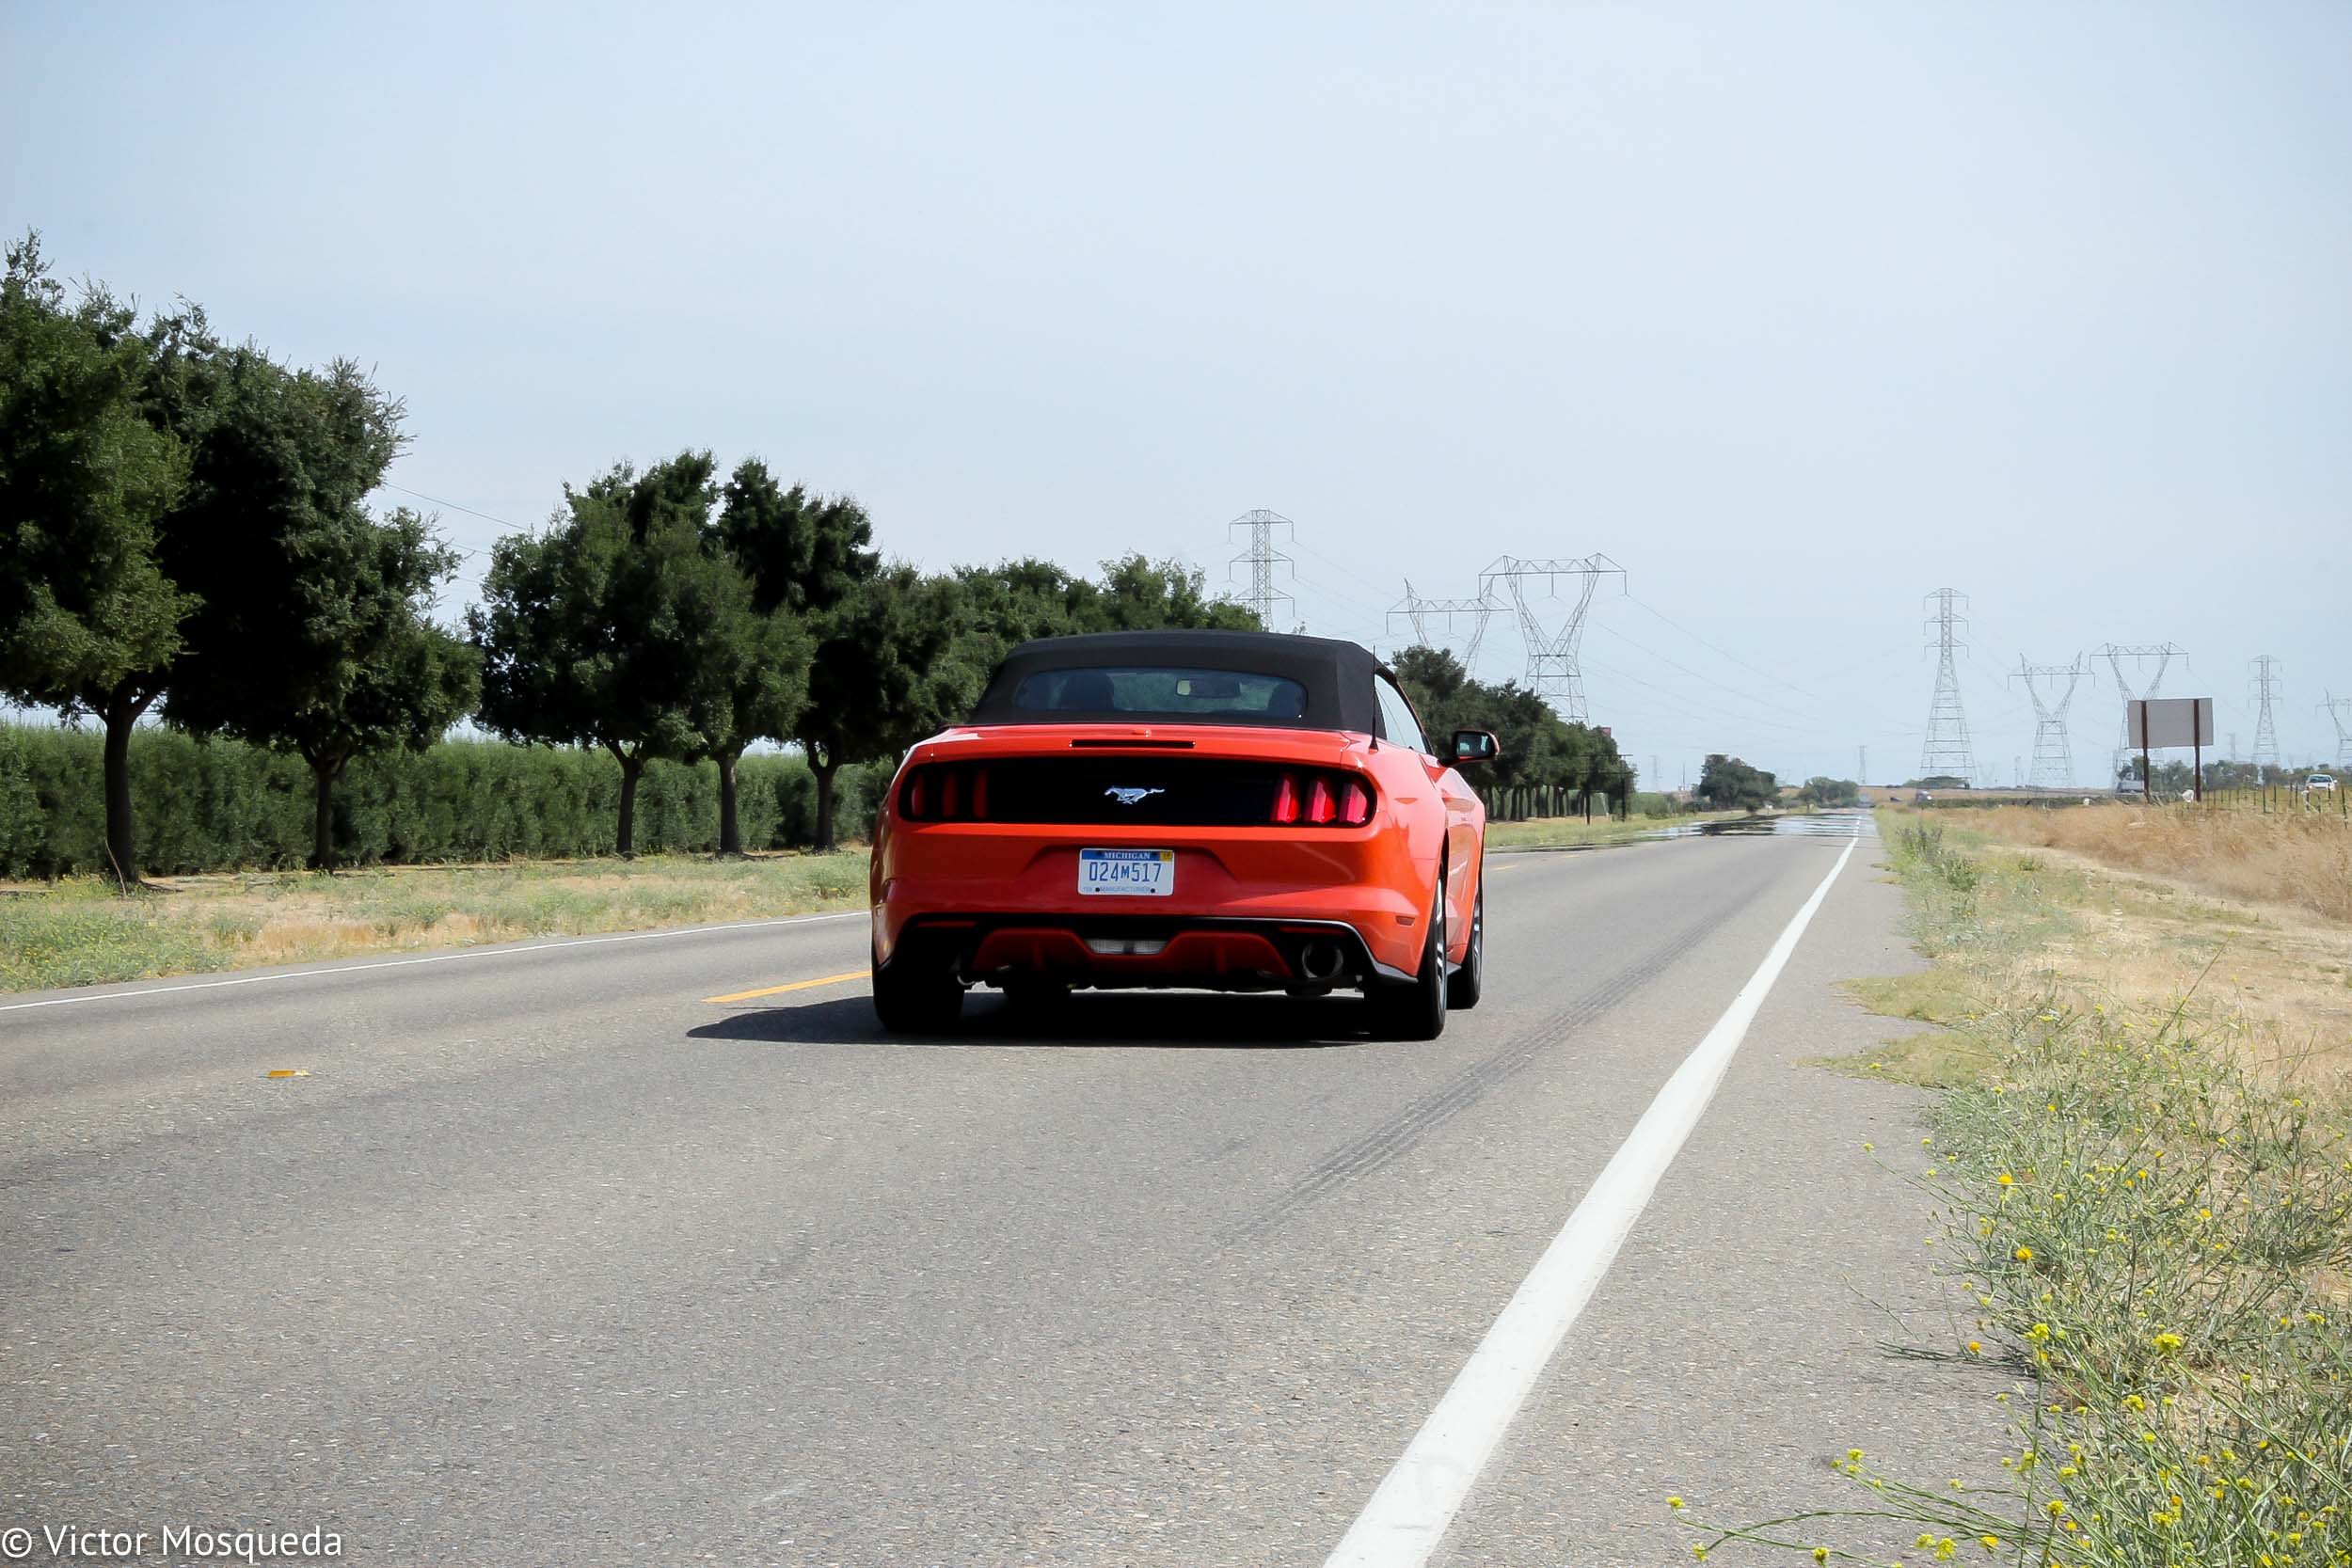 Ford Mustang 2.3 Turbo 0-60 Time